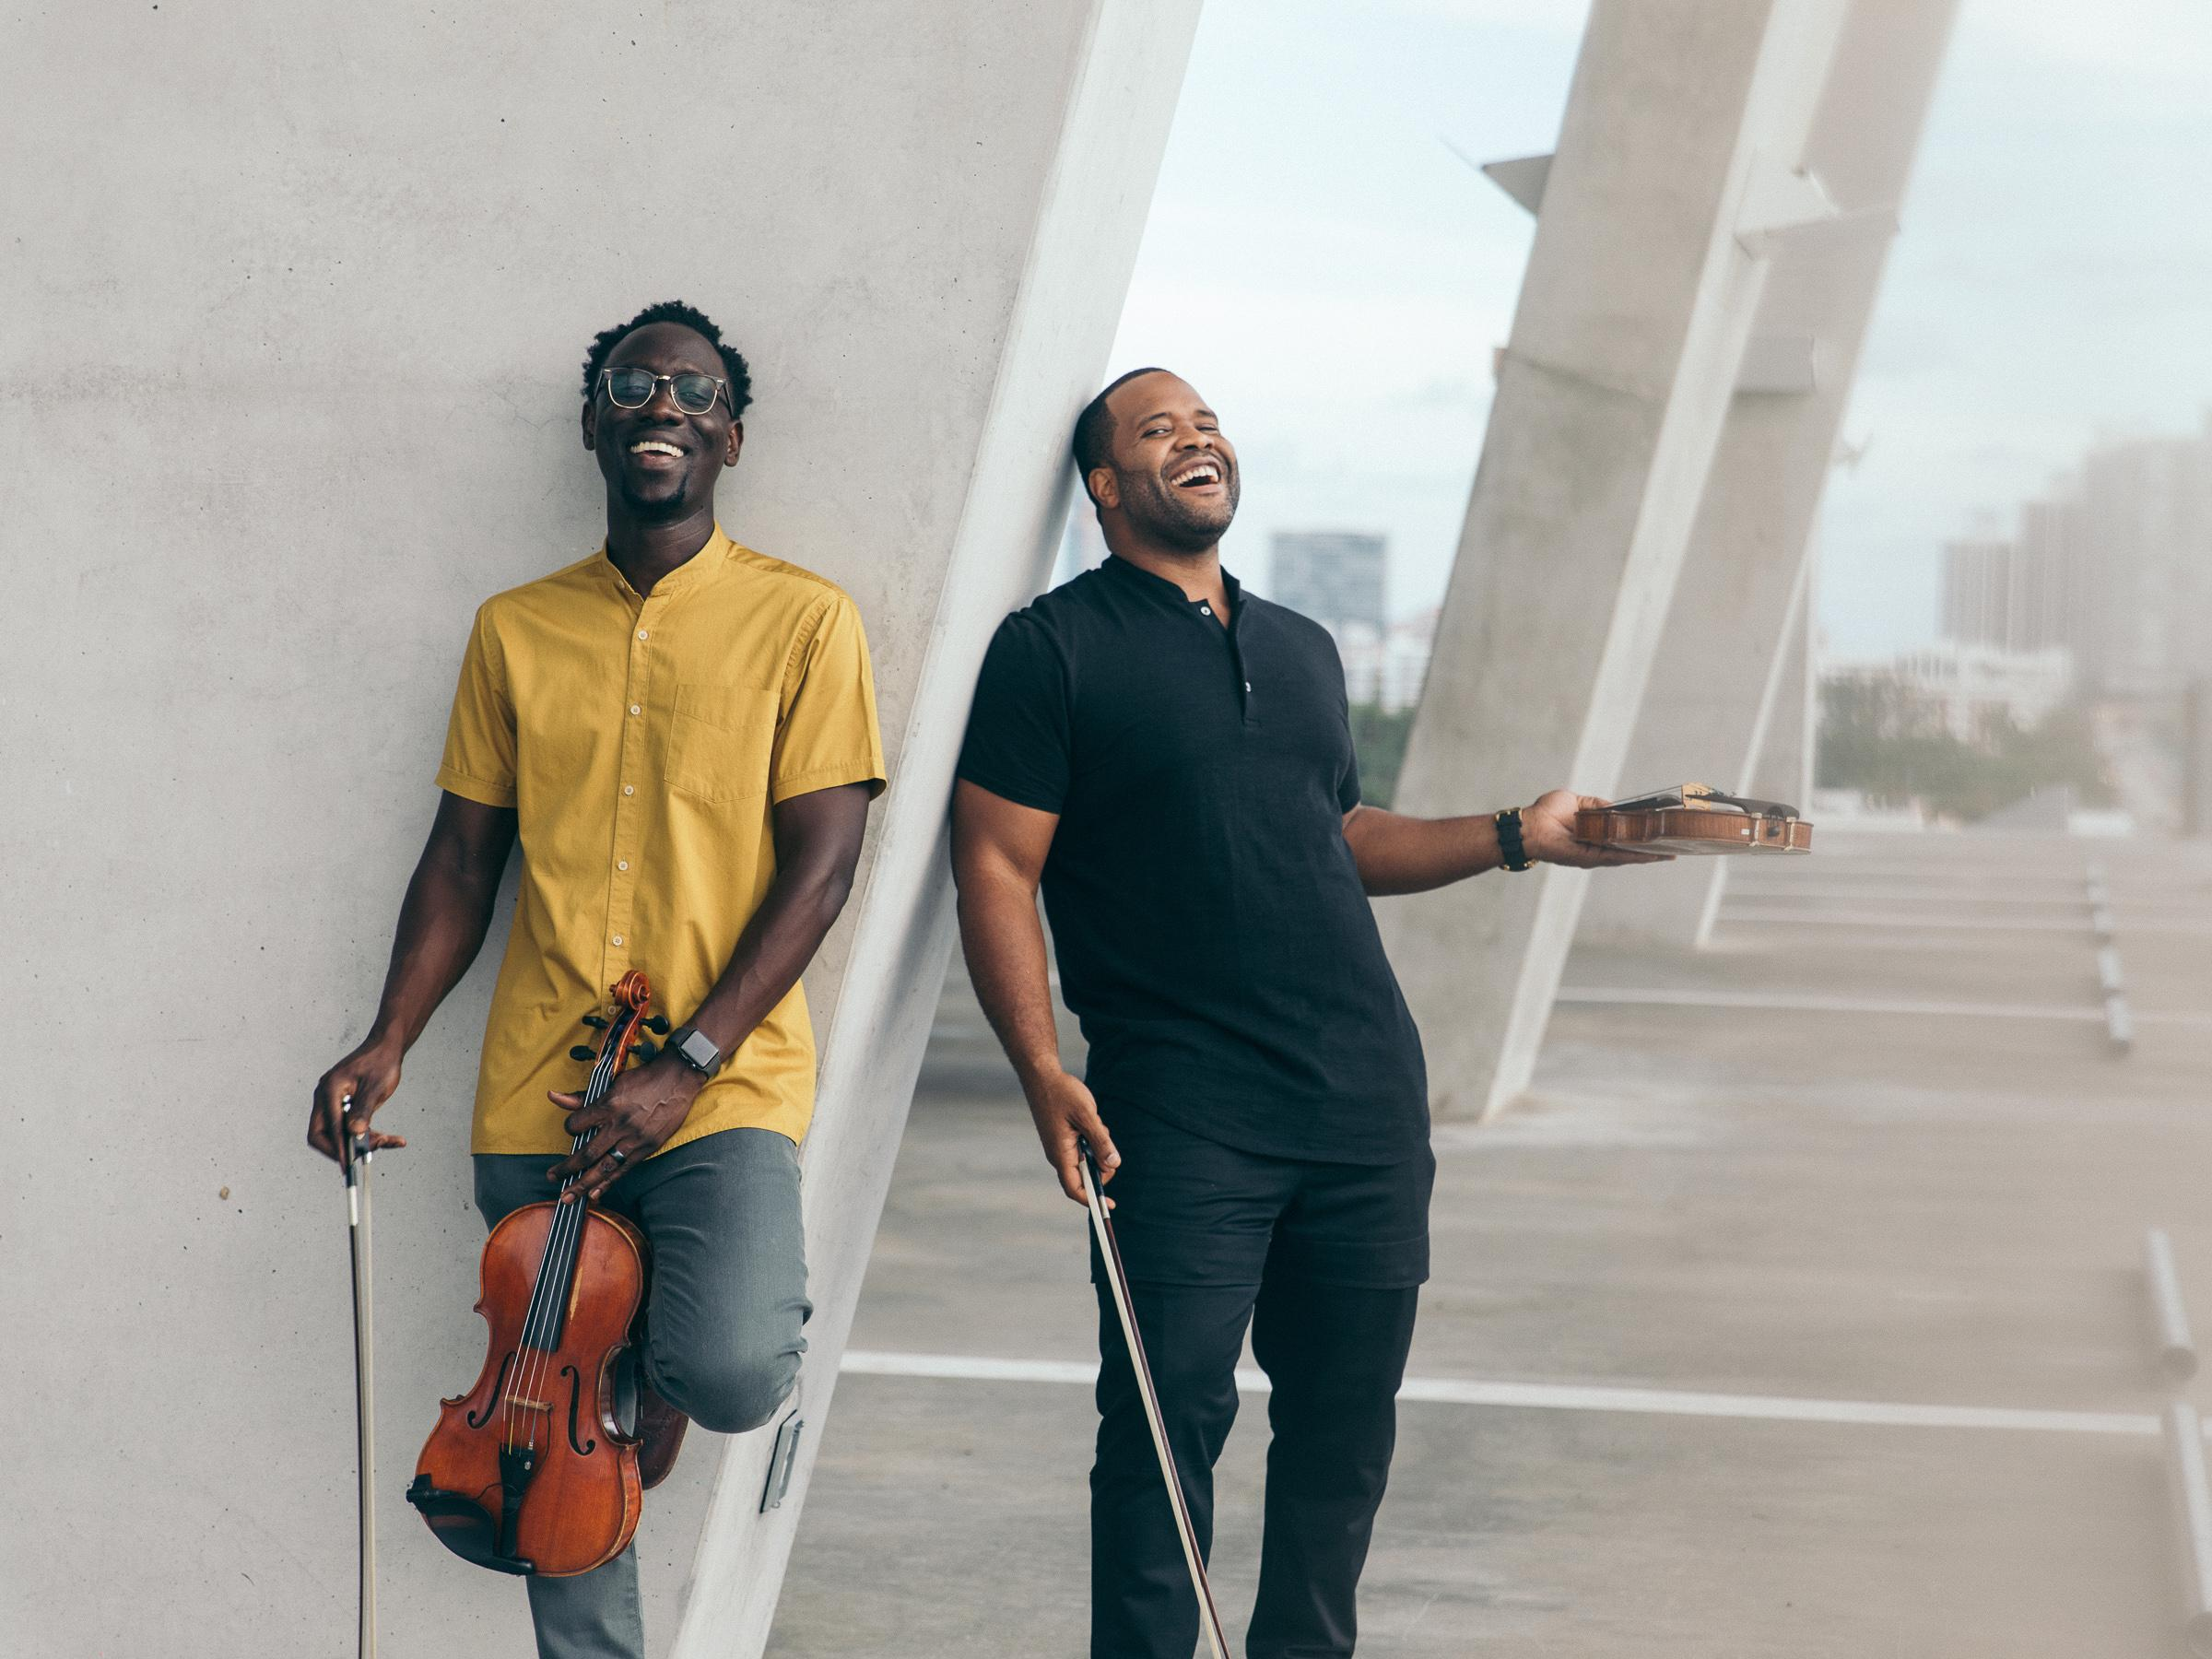 Black Violin merges classical with hip hop music